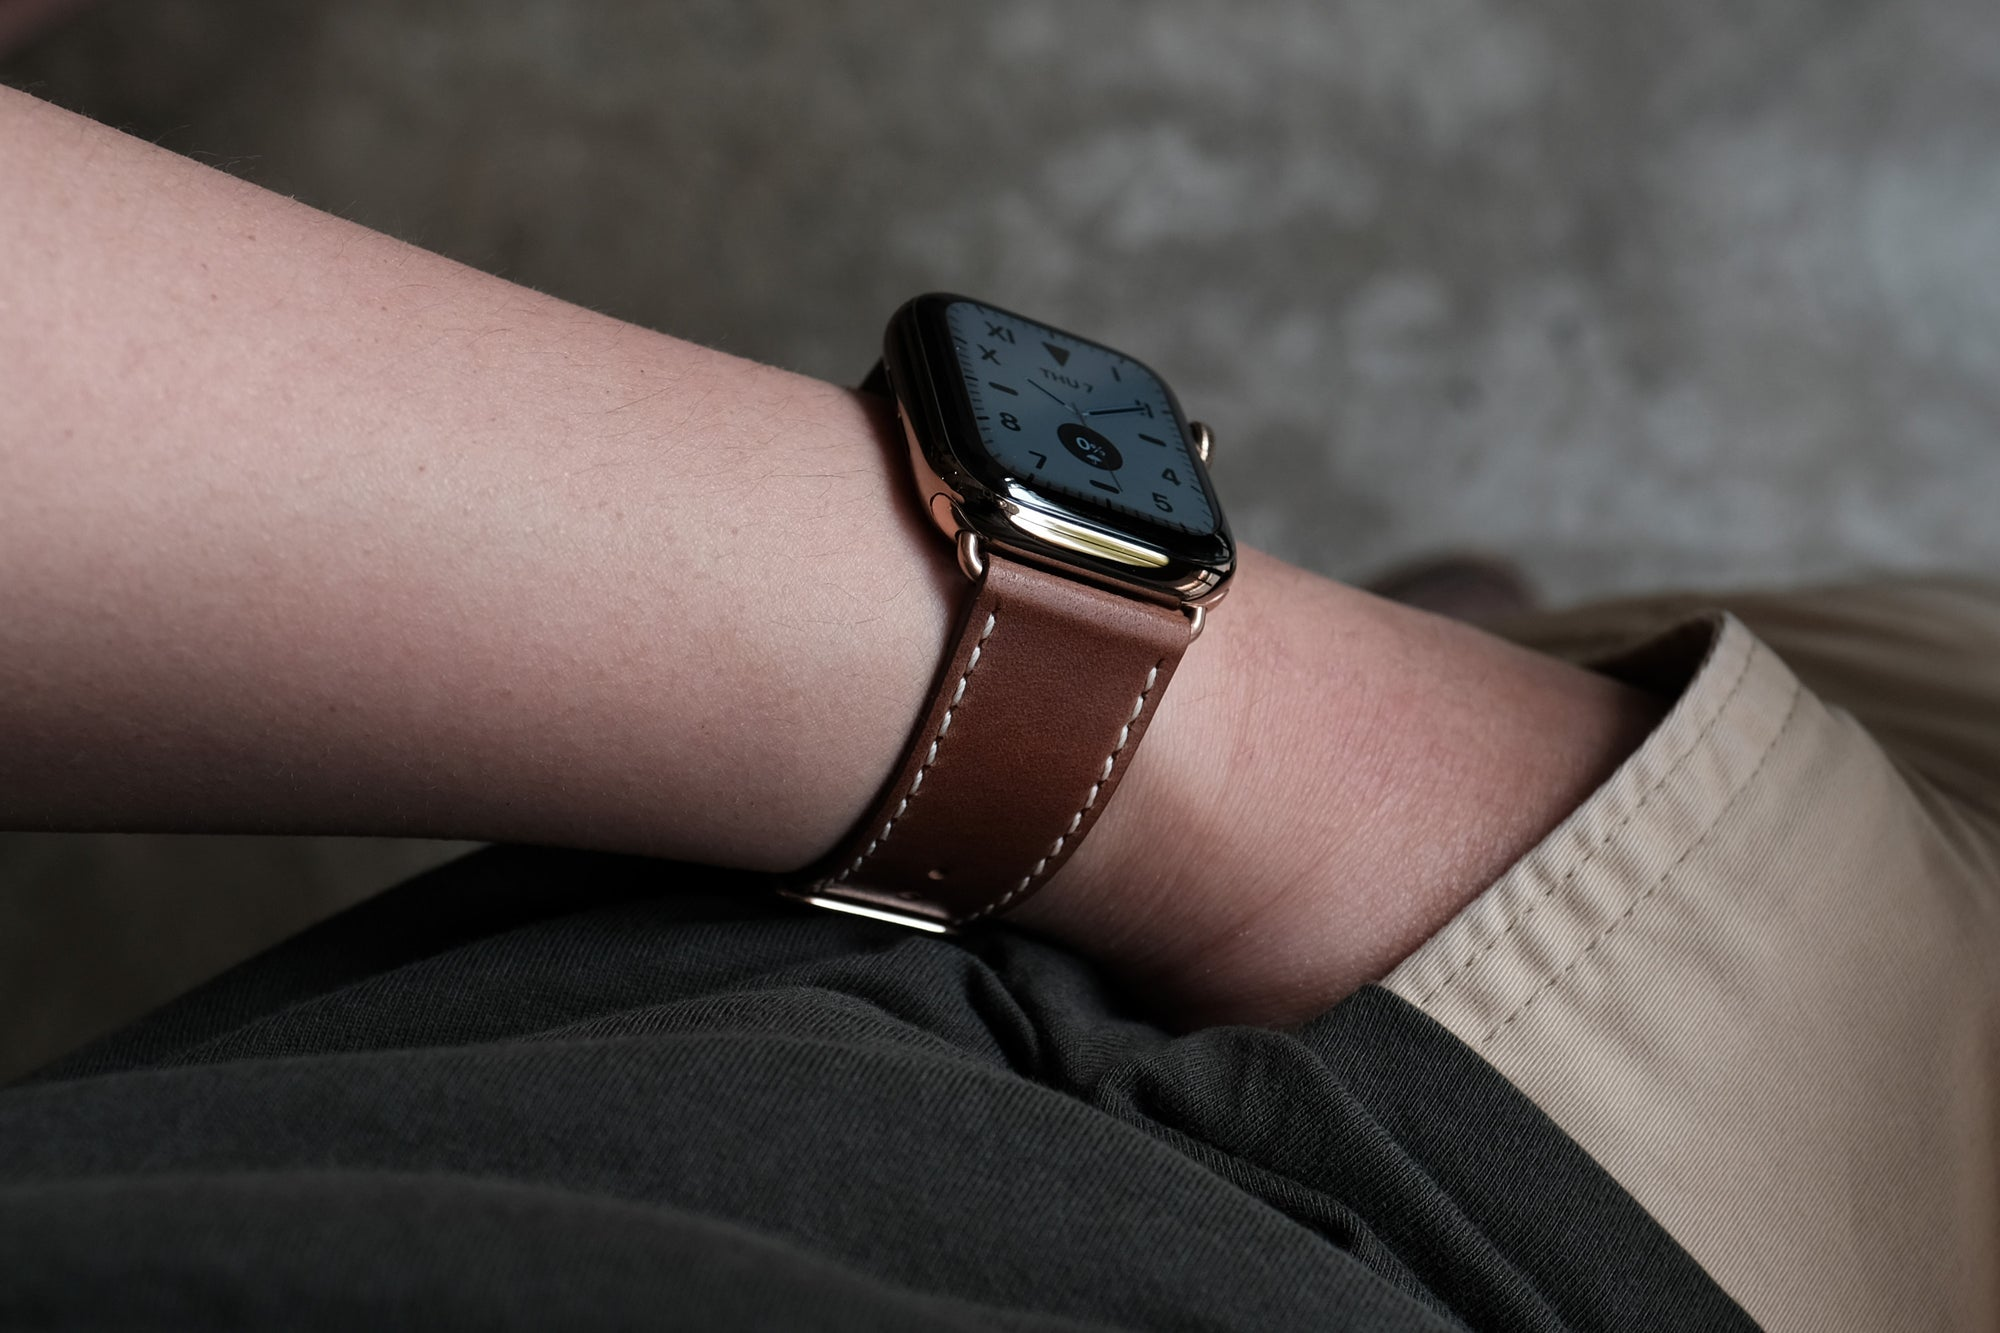 Pin and Buckle Apple Watch Bands - Full Grain Vegetable Tanned Leather - Luxe - Chestnut Brown